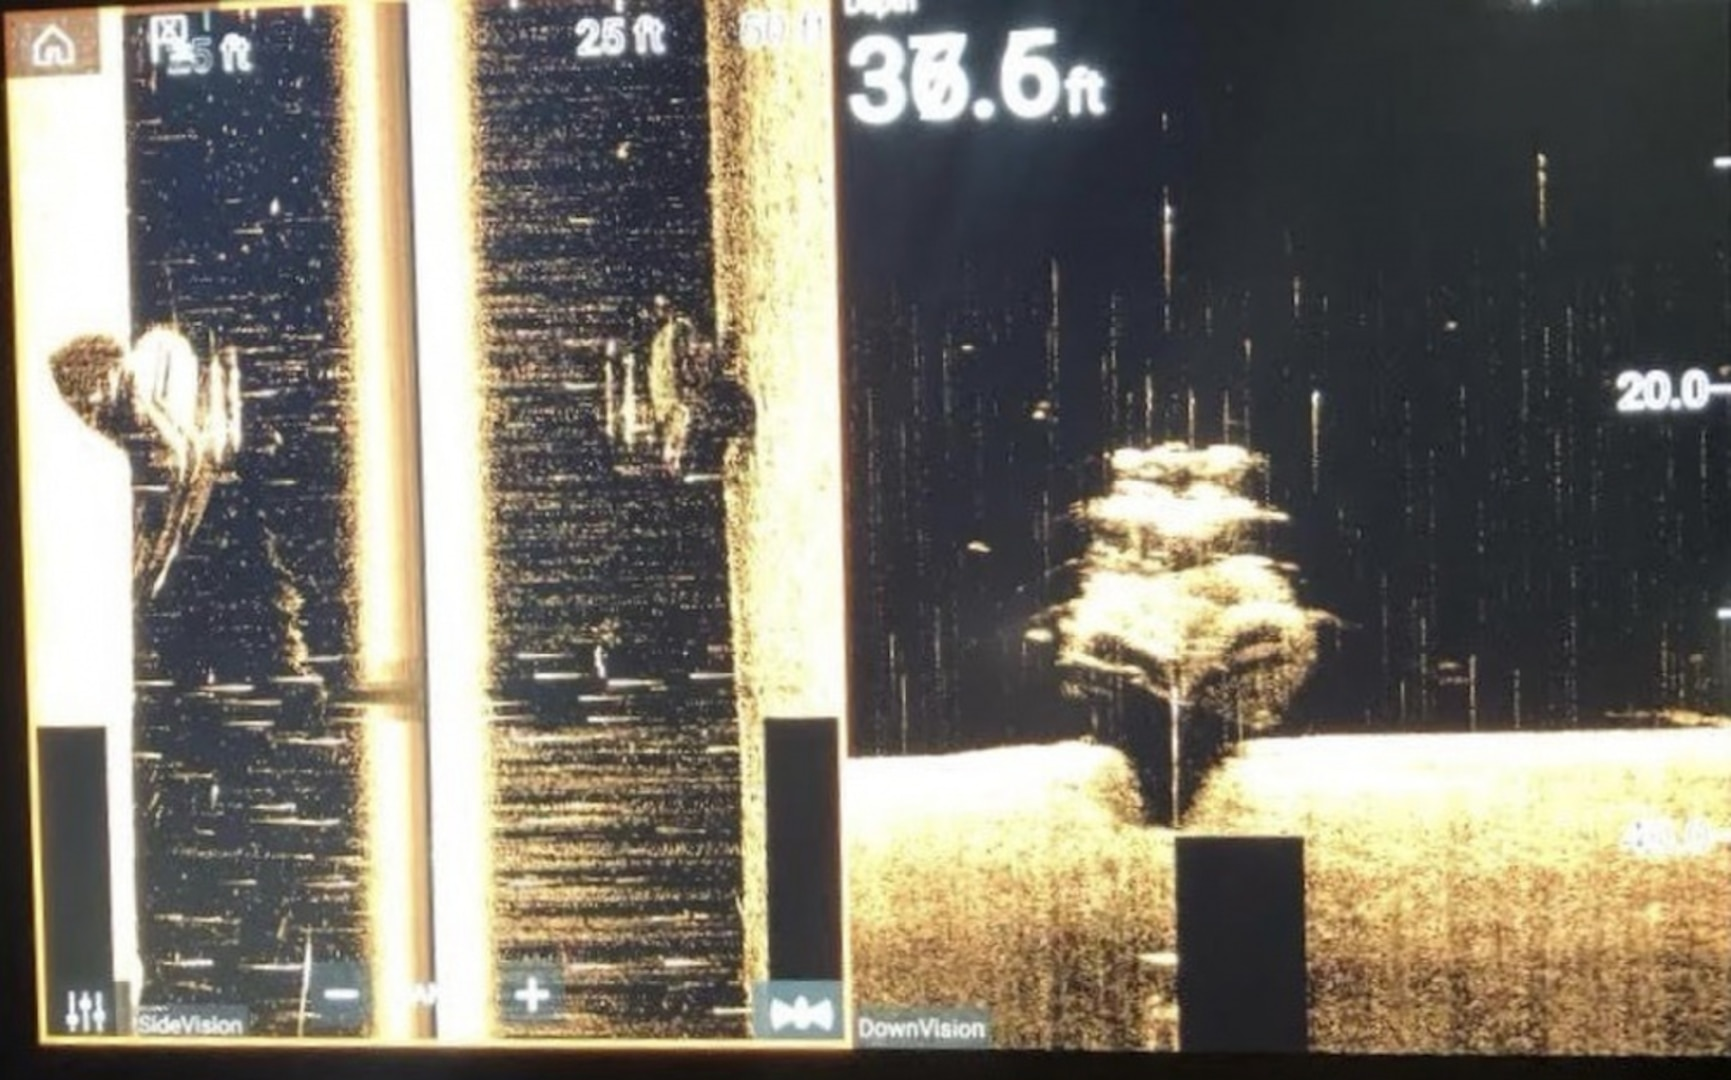 Sonar image depicting a sunken vessel on the James River in Virginia, May 27, 2021. (Photo by Chesterfield County Virginia Marine Team/Released)